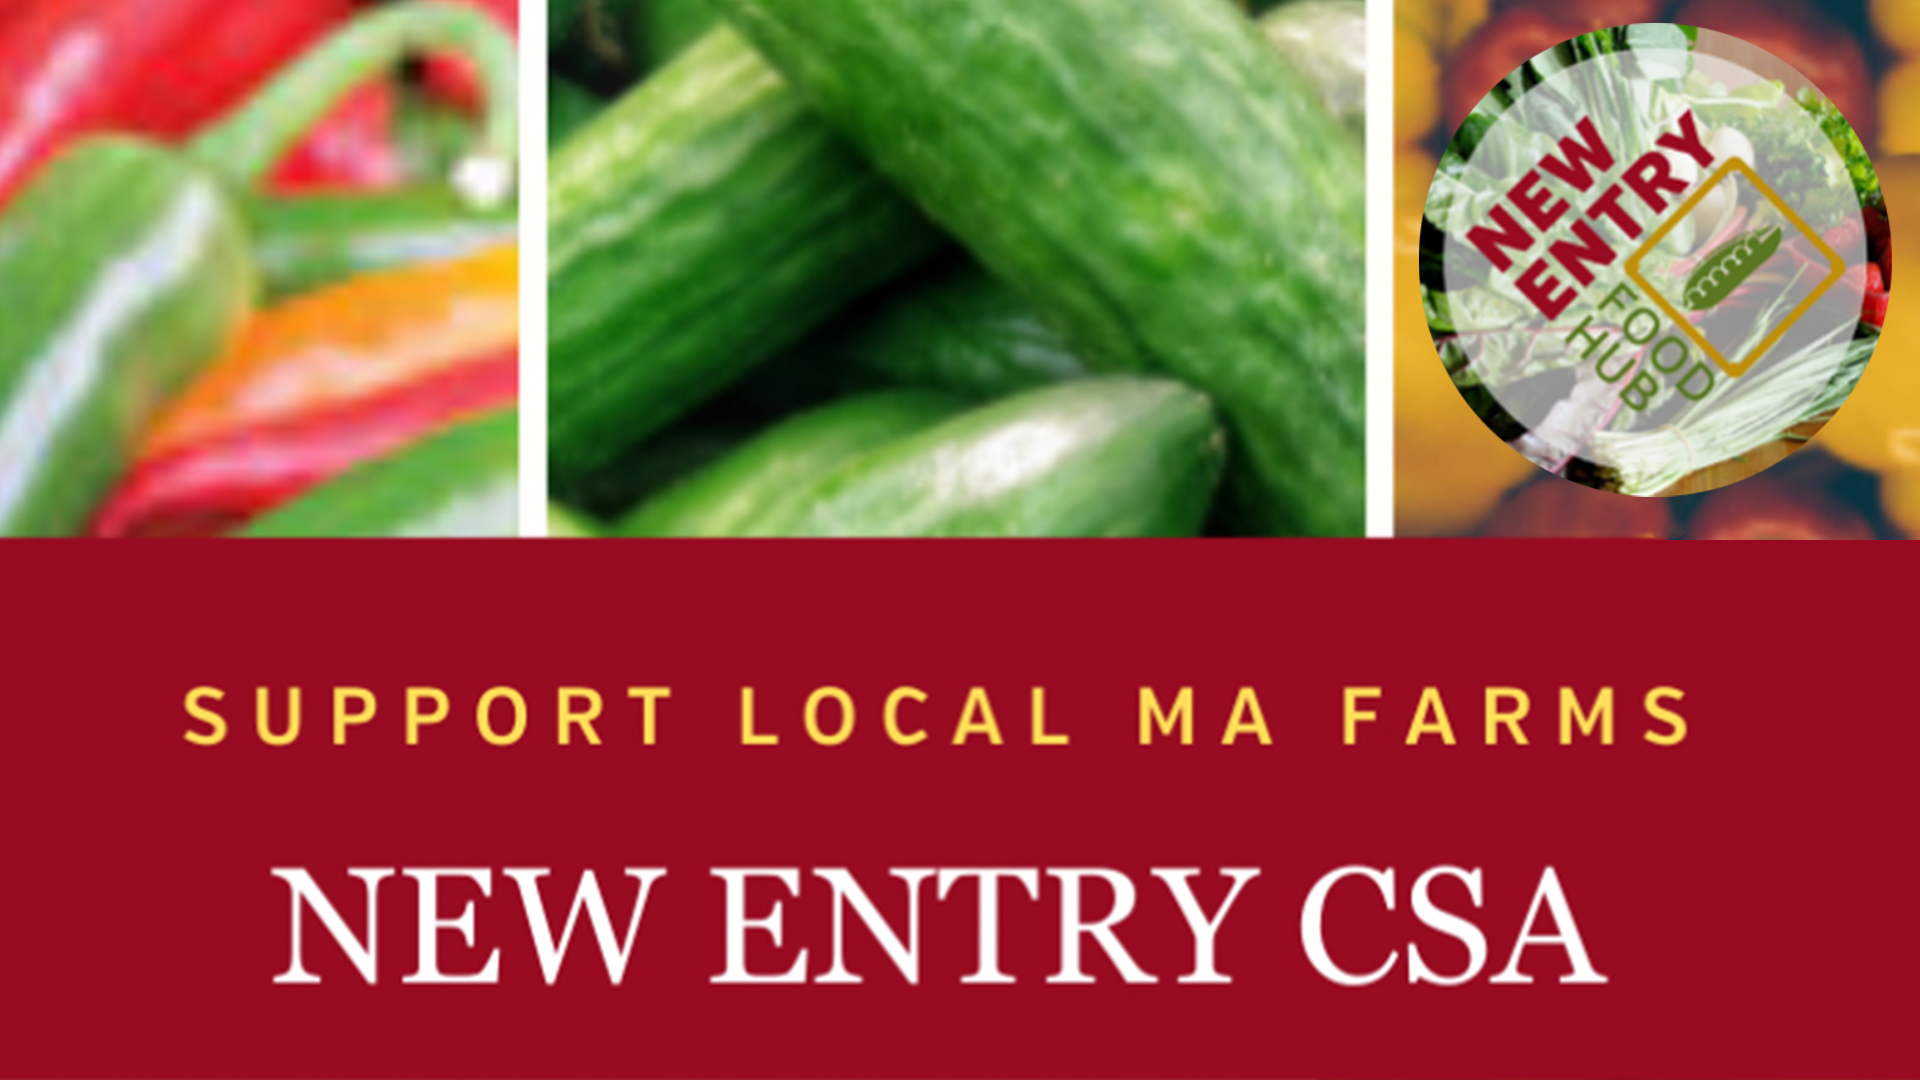 New Entry CSA: Images of various vegetables in a tryptic promoting New Entry local farming